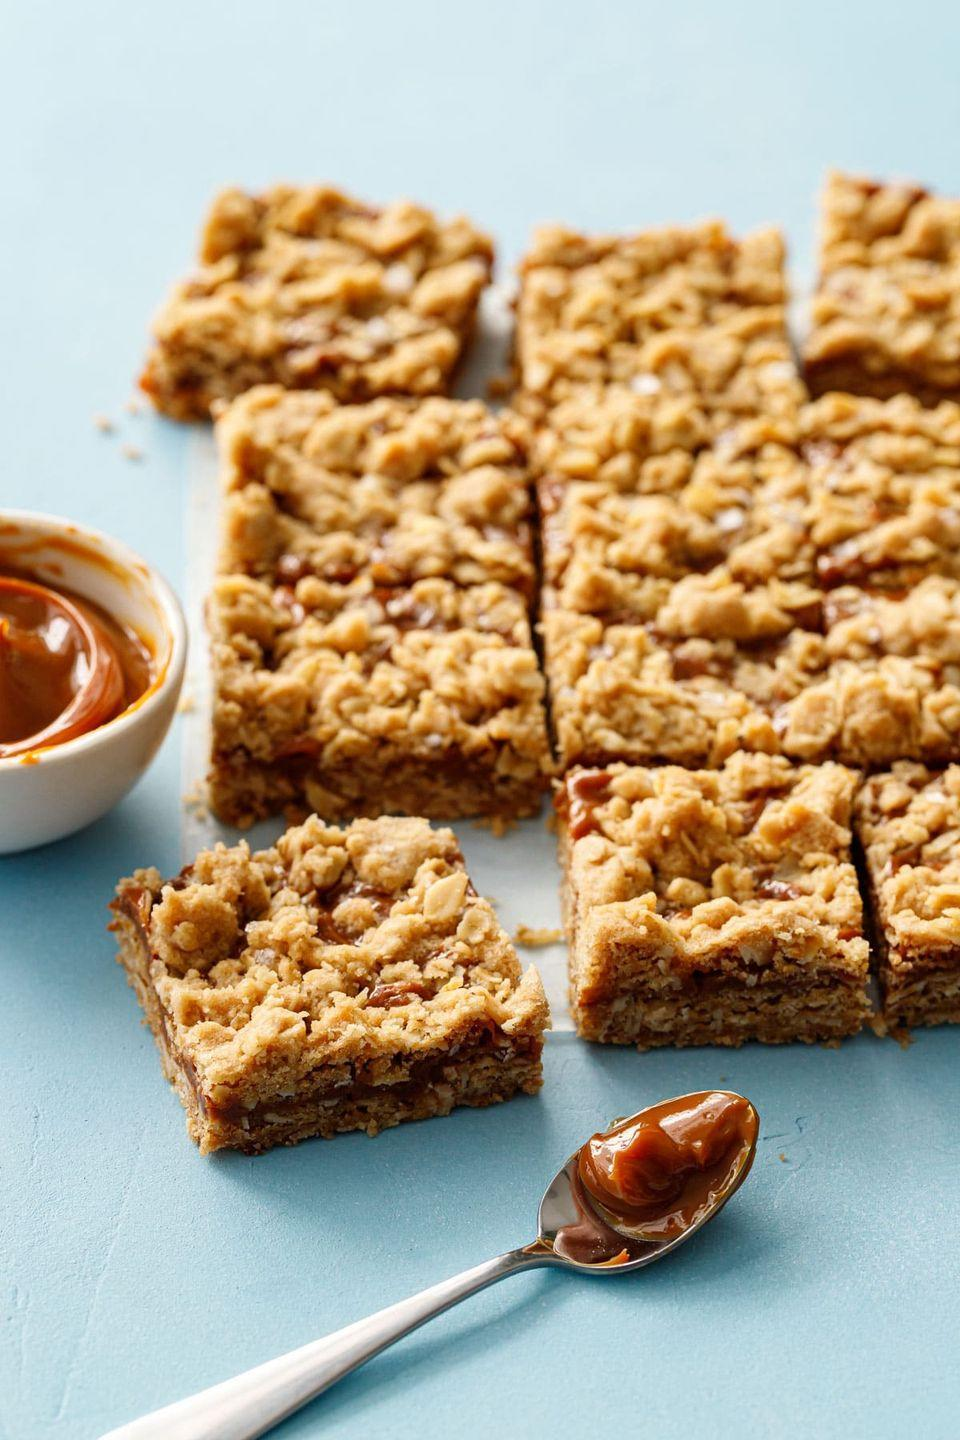 """<p>A crumbly oat cookie topped with a rich and creamy dulce de leche and a sprinkle of sea salt is the ideal sweet and salty treat. </p><p><a href=""""https://www.loveandoliveoil.com/2019/07/dulce-de-leche-oatmeal-crumb-bars.html"""" rel=""""nofollow noopener"""" target=""""_blank"""" data-ylk=""""slk:Get the recipe"""" class=""""link rapid-noclick-resp"""">Get the recipe</a>.</p>"""